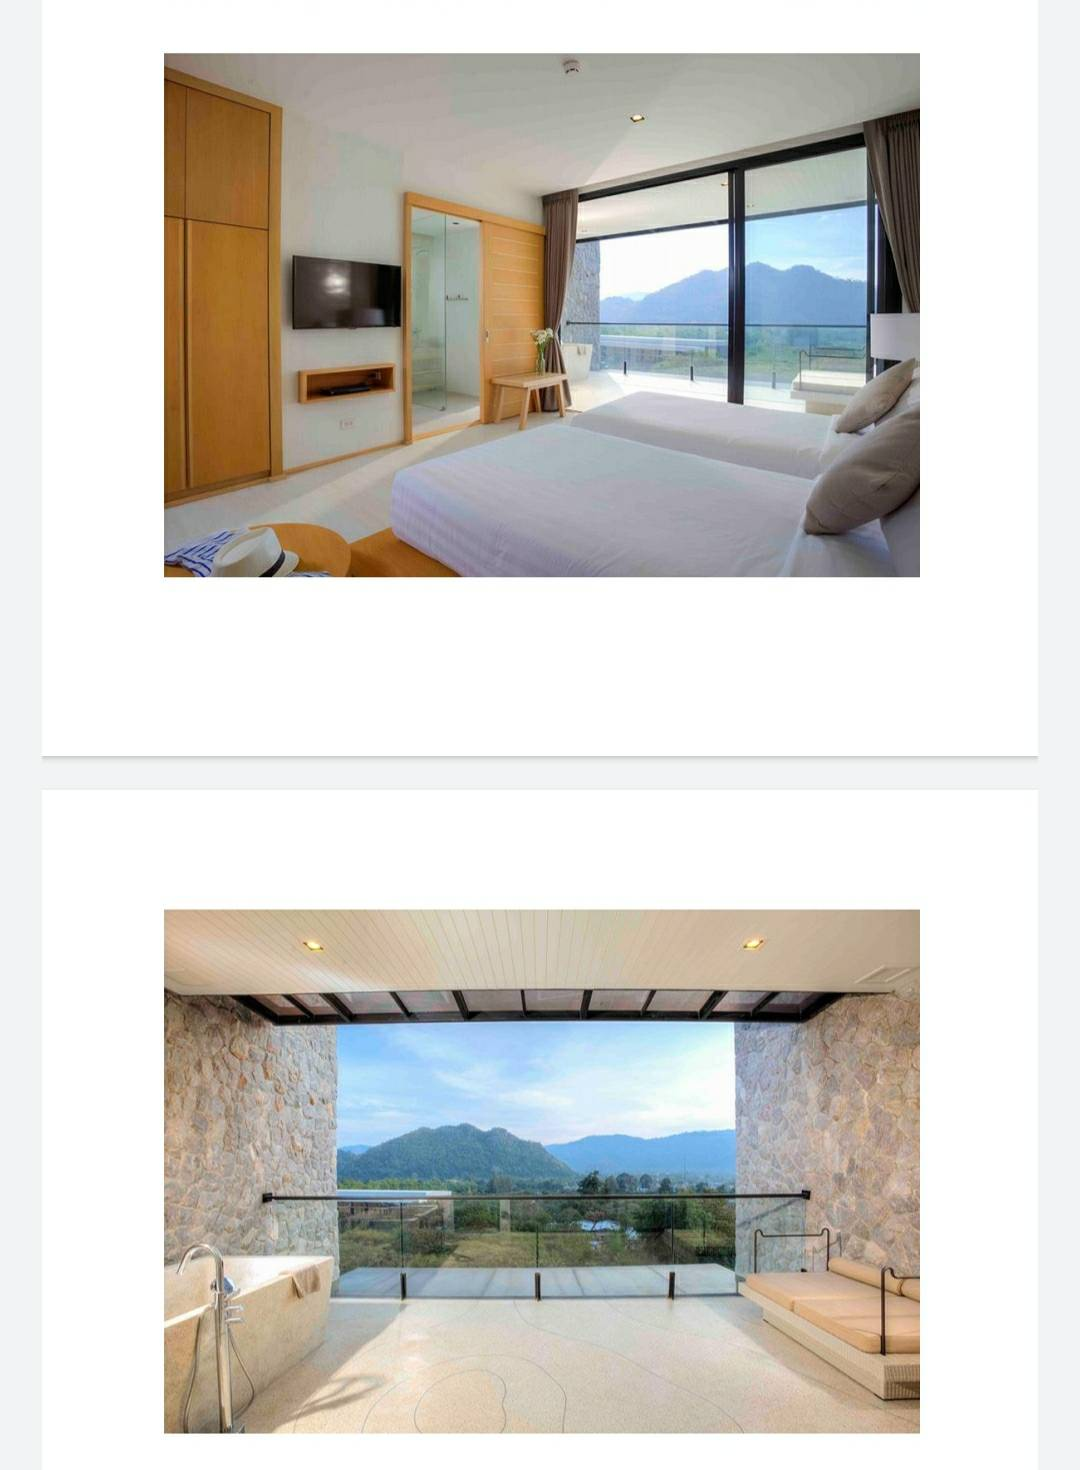 For SaleCondoKorat KhaoYai : For sale condos Botanice Kao Yai (vacation home) size 49.76 sqm Mountain view